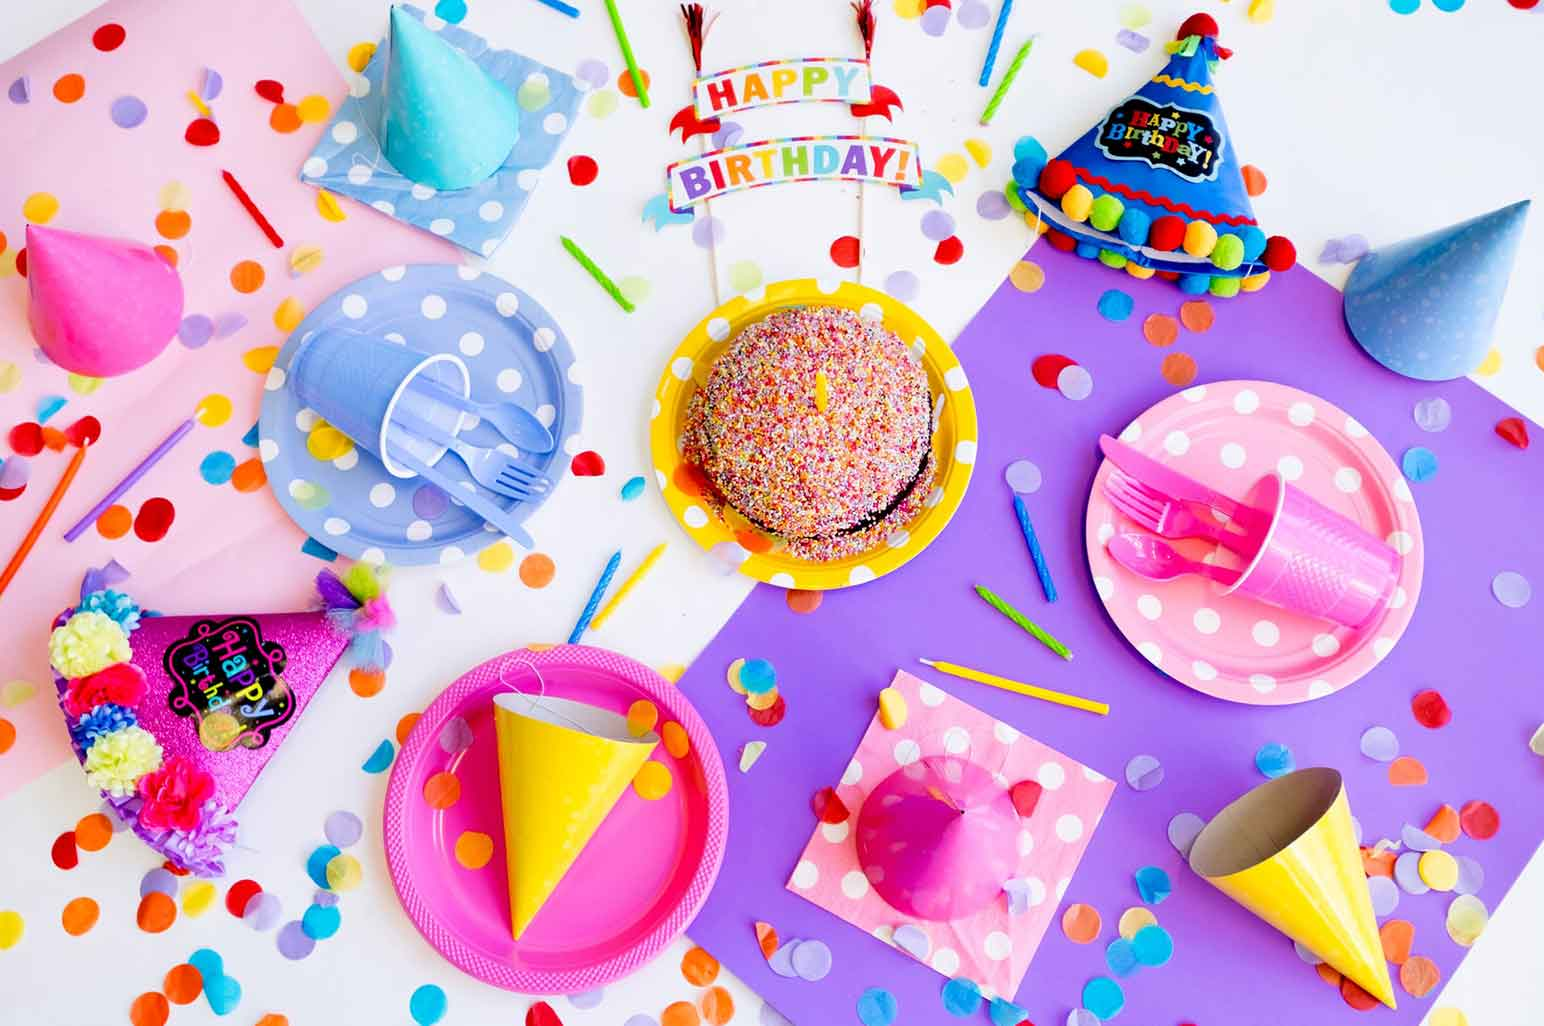 All You Need to Know About Organizing a Kid's Birthday Party